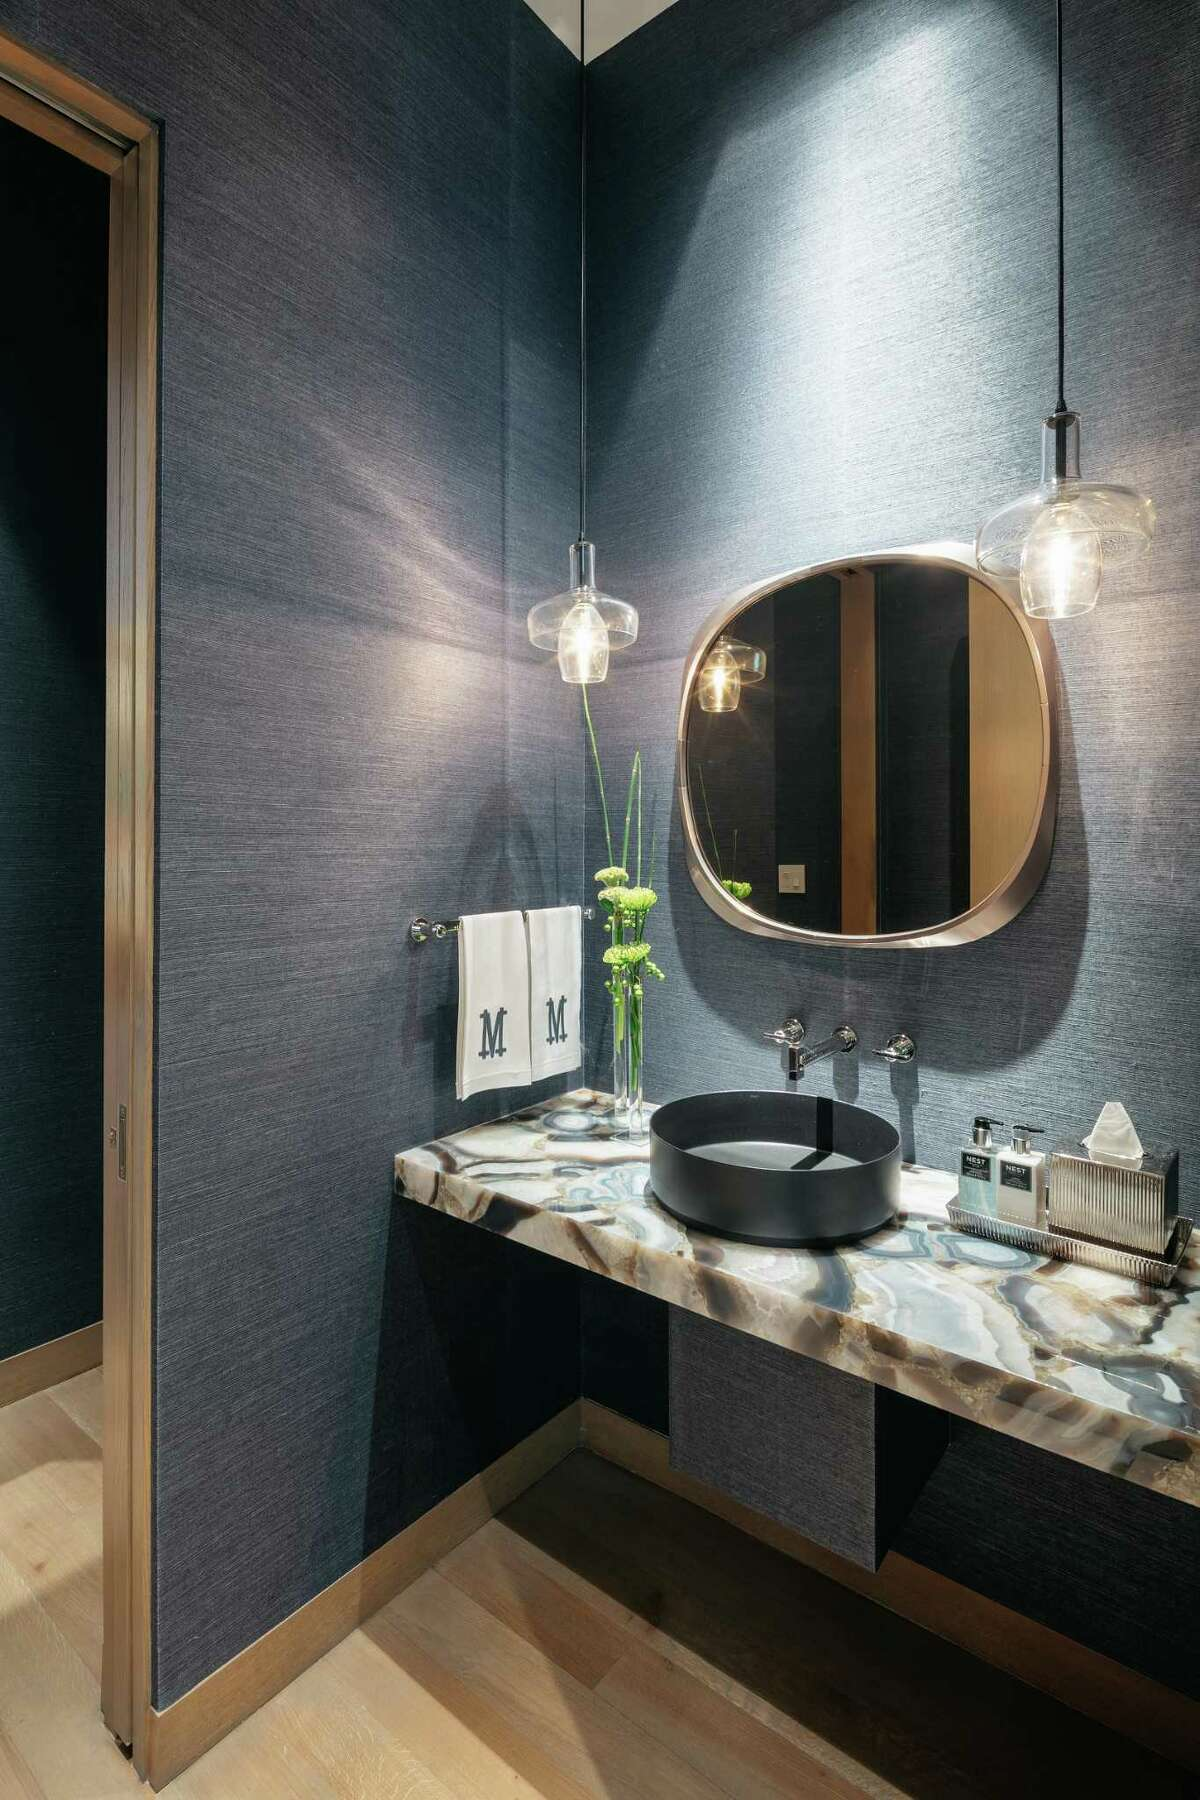 Dark blue grasscloth wallpaper complements the gray-white movement in the agate counter in the powder bathroom.